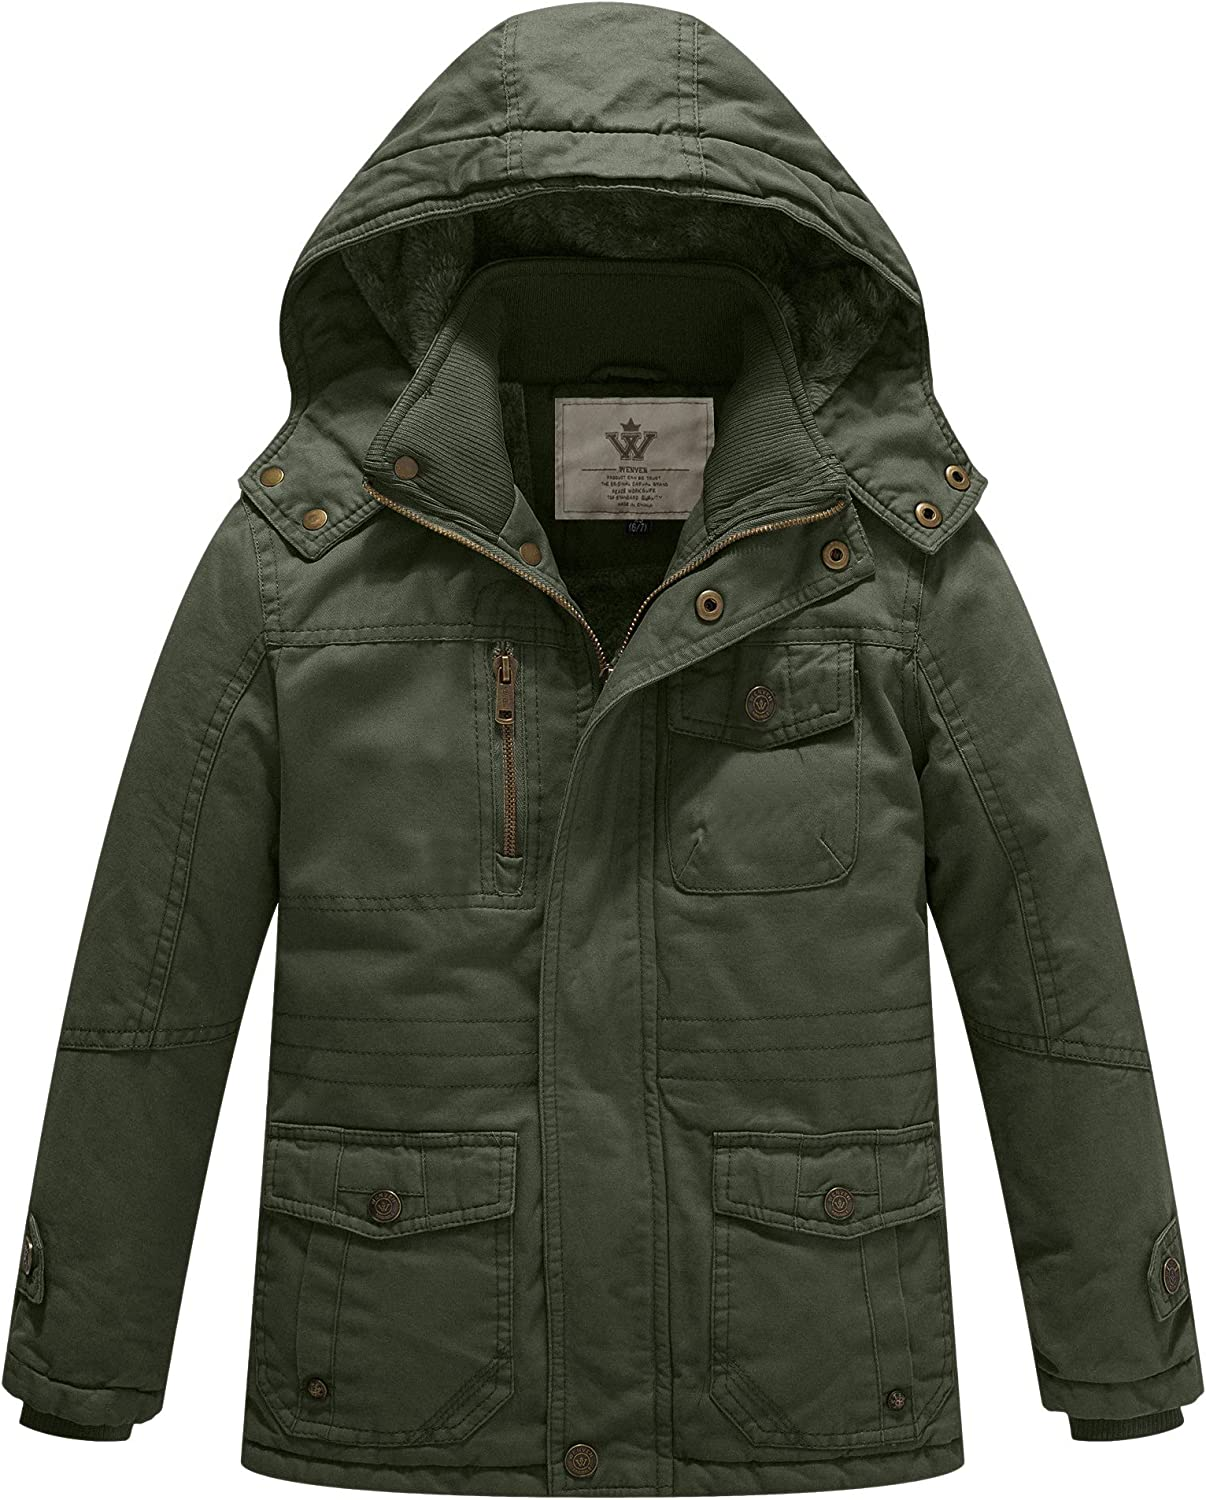 WenVen Boys /& Girls Cotton thick sherpa lined Jacket with Removable Hood